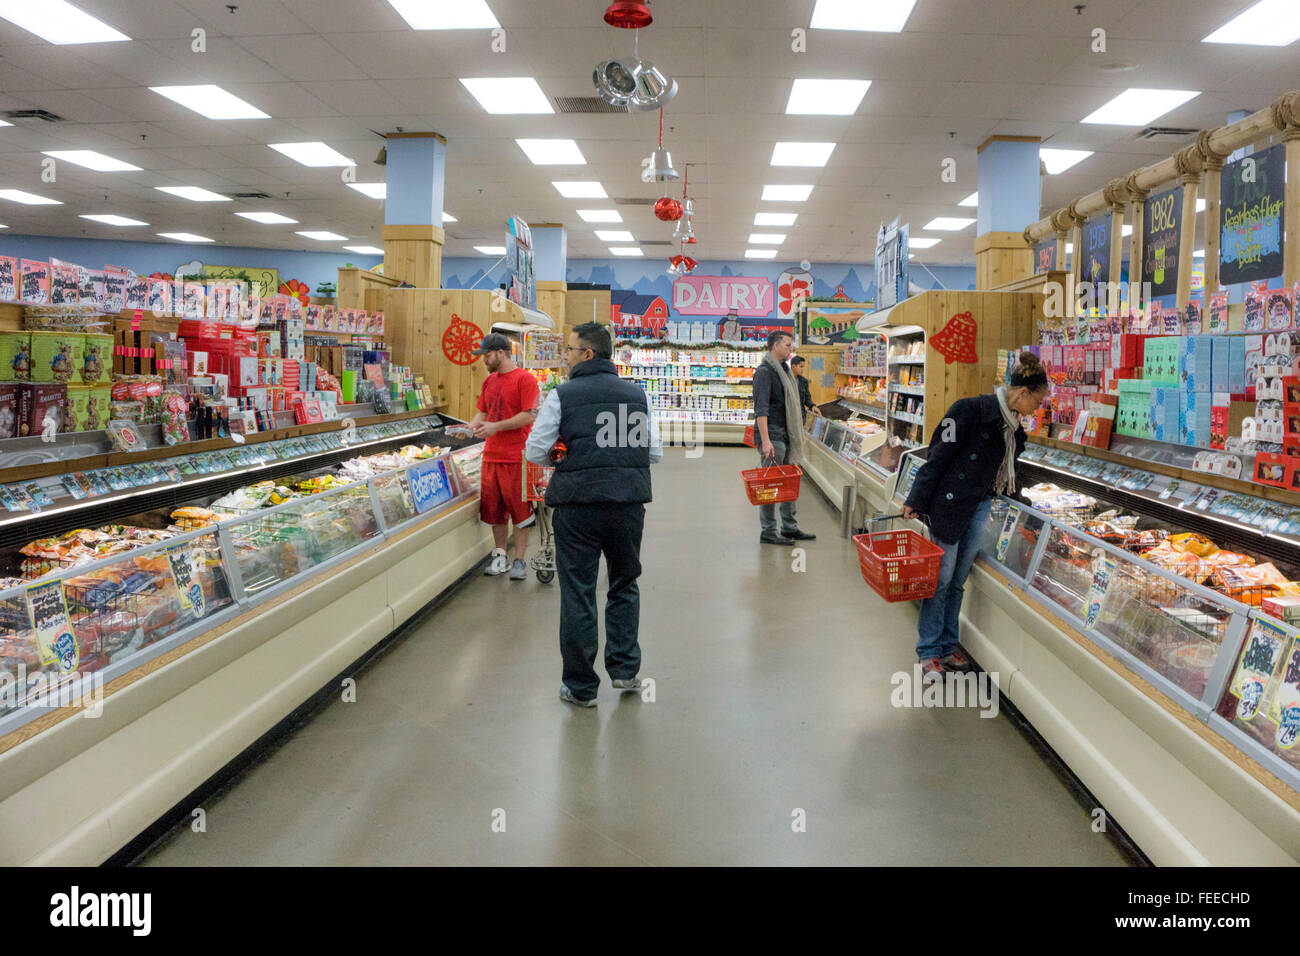 plenty of room for customers to browse in wide aisles of Trader Joes decorated for Christmas with hanging balls - Stock Image